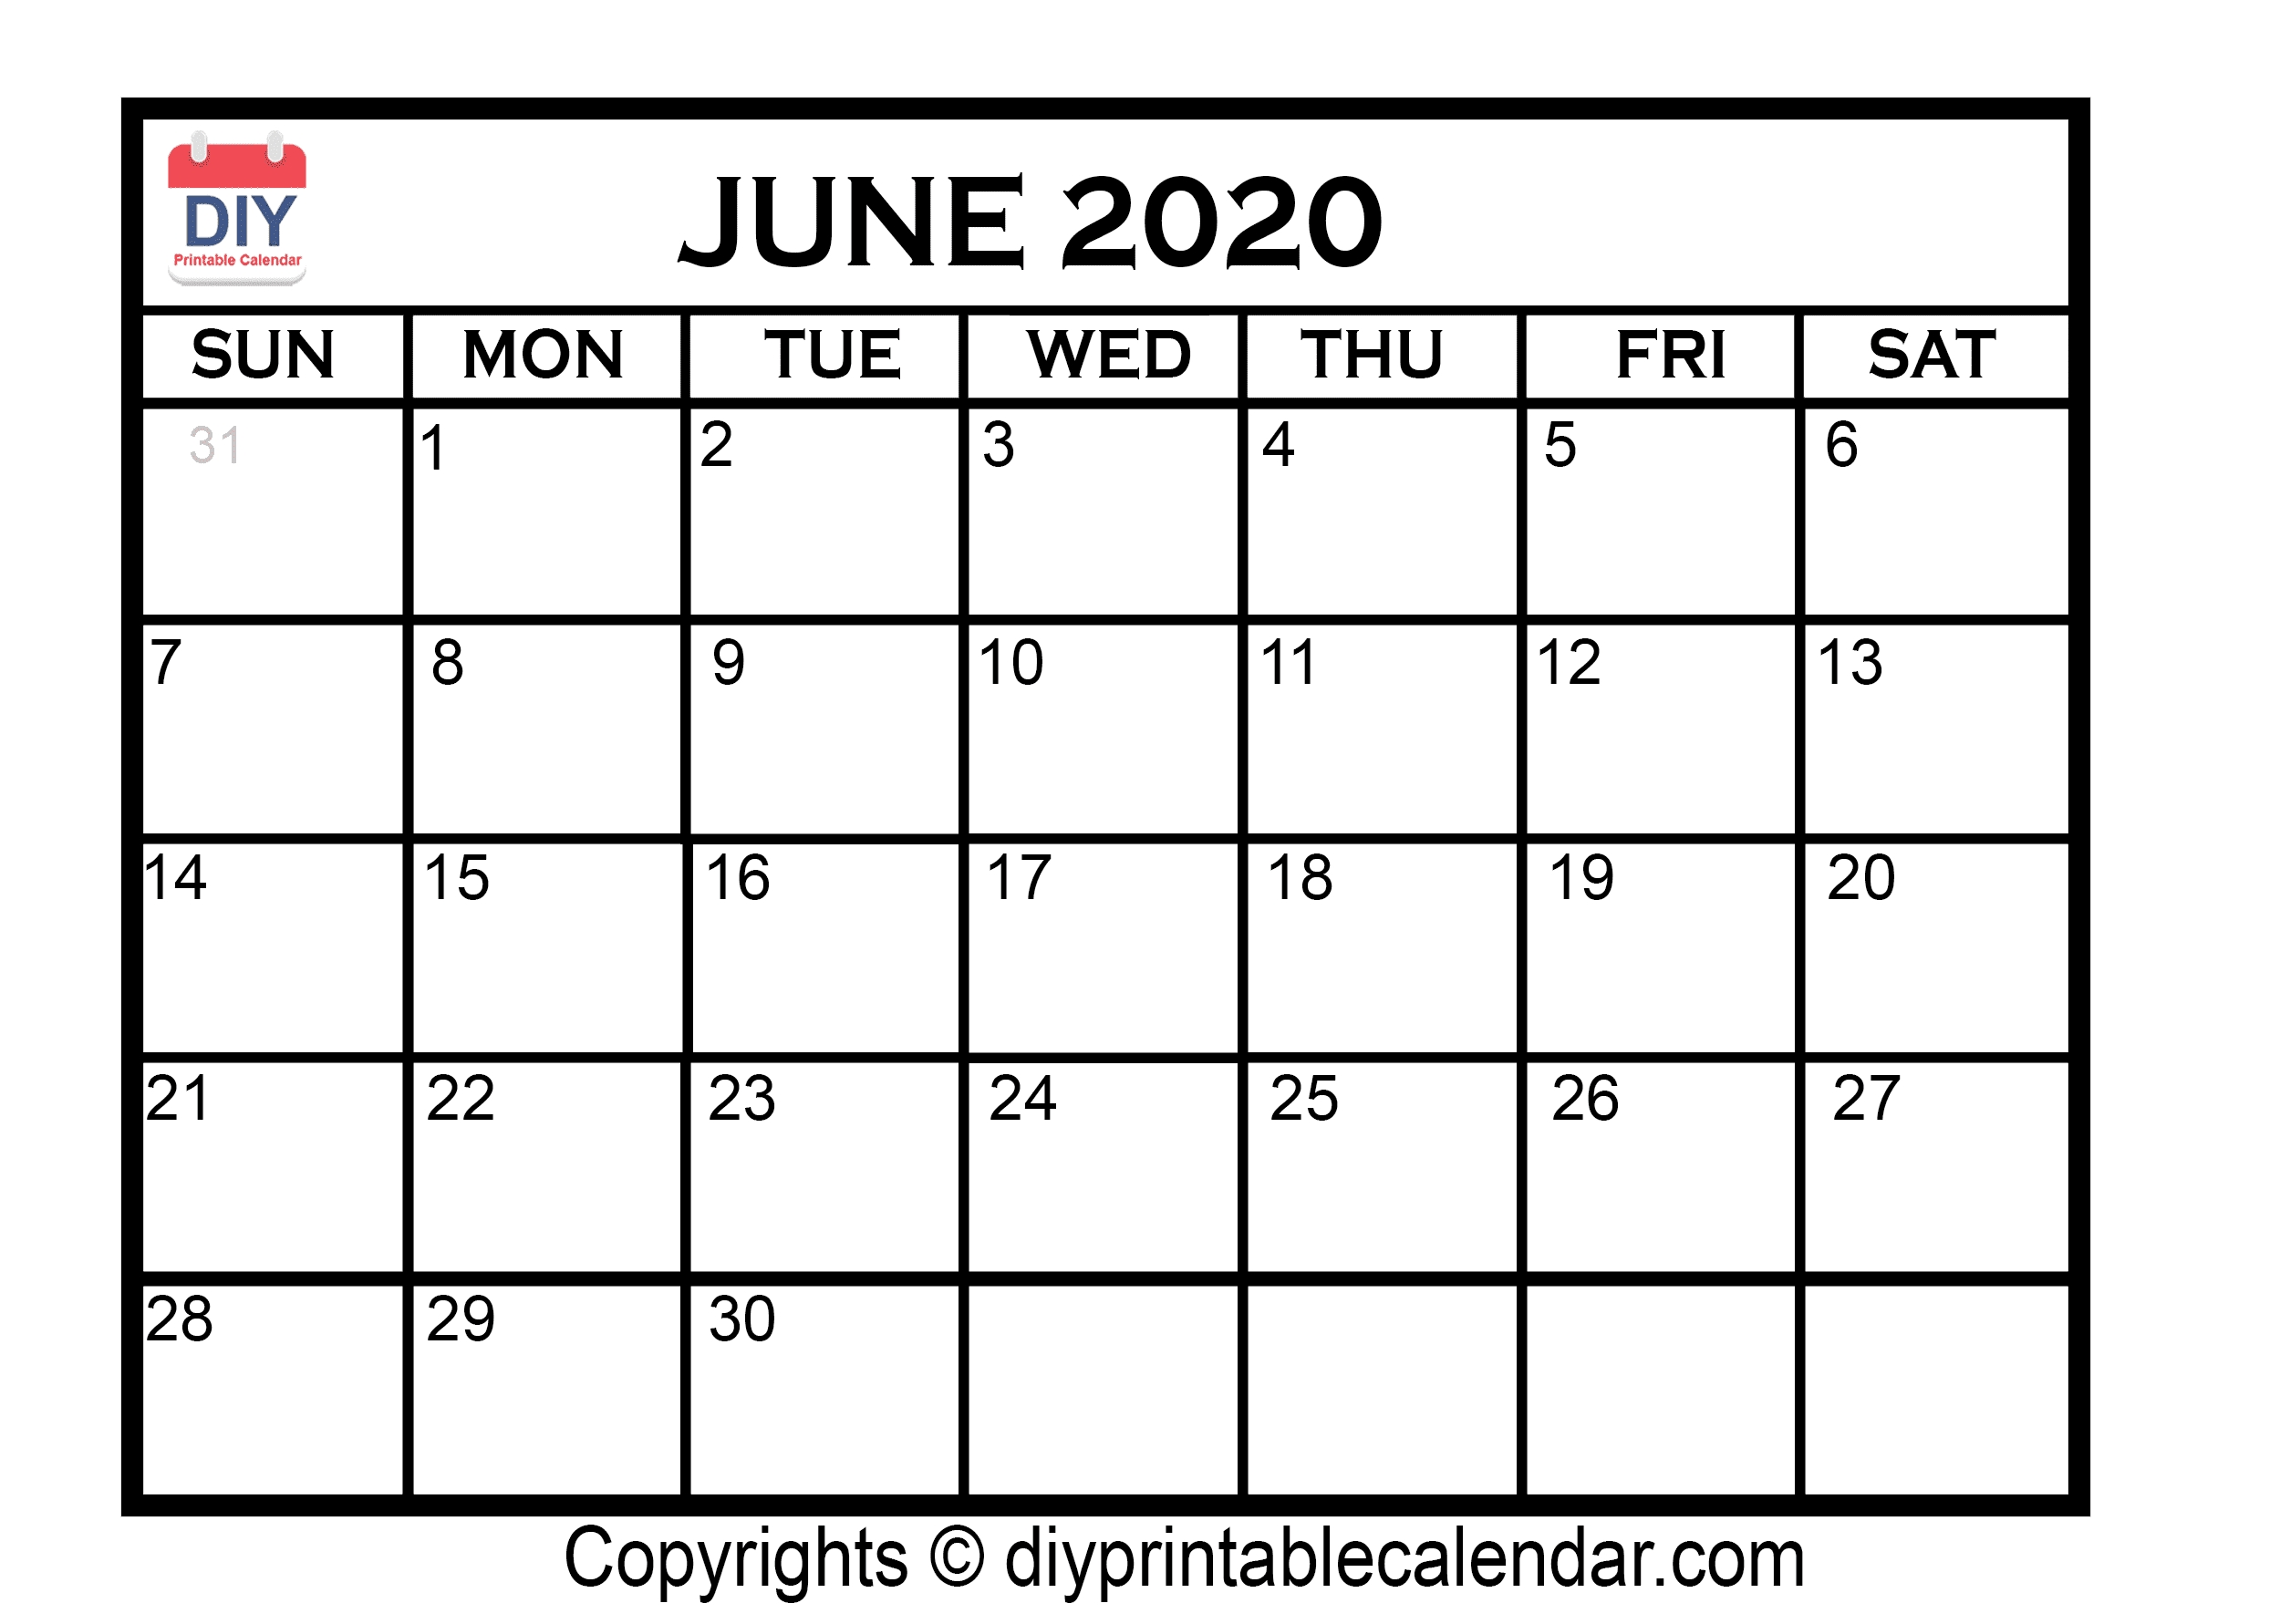 June 2020 Printable Calendar Template for 2020 Calendar With Spaces To Write On Free